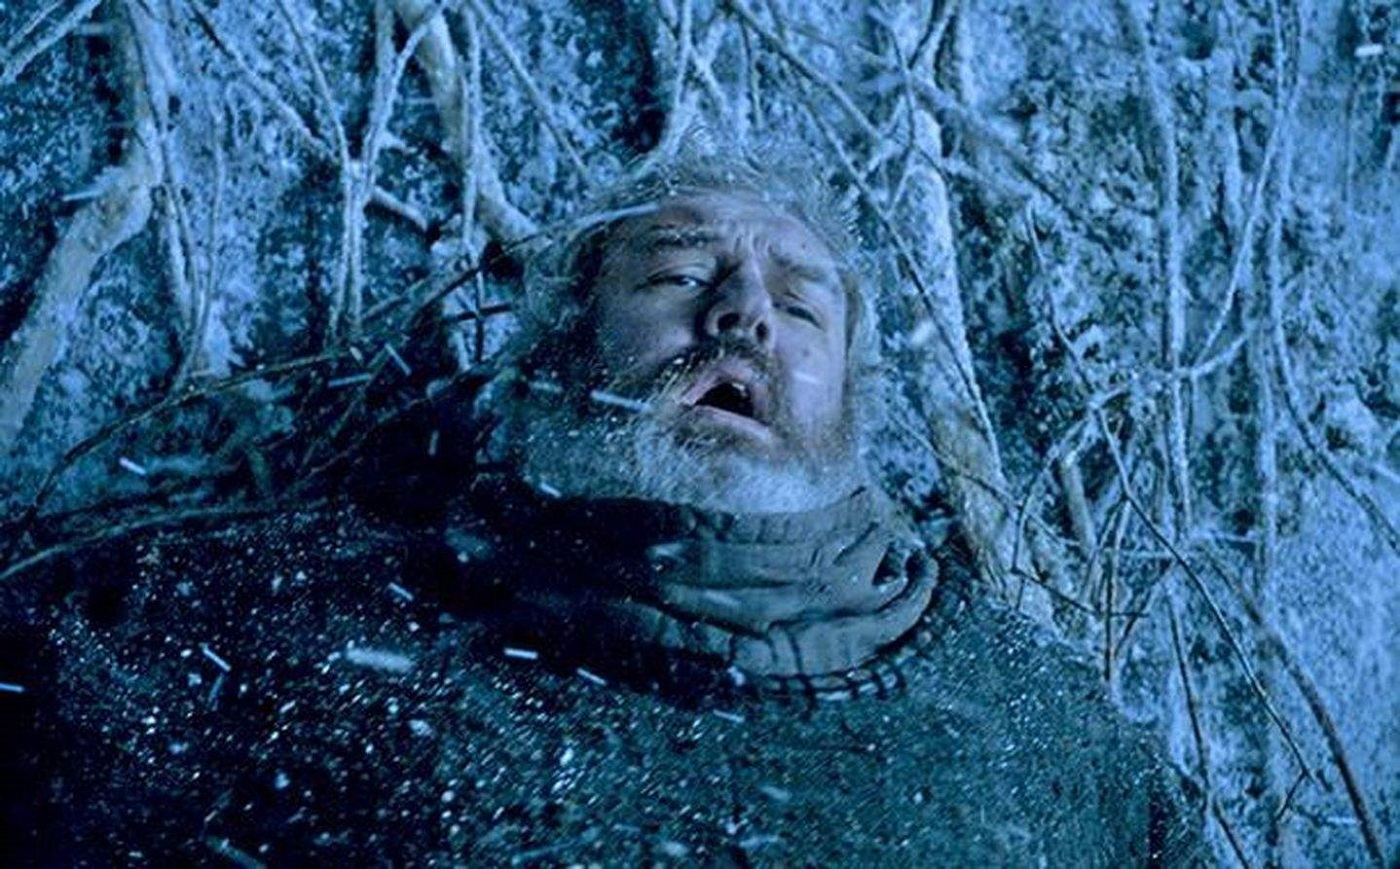 Hodor's Death on Game of Thrones